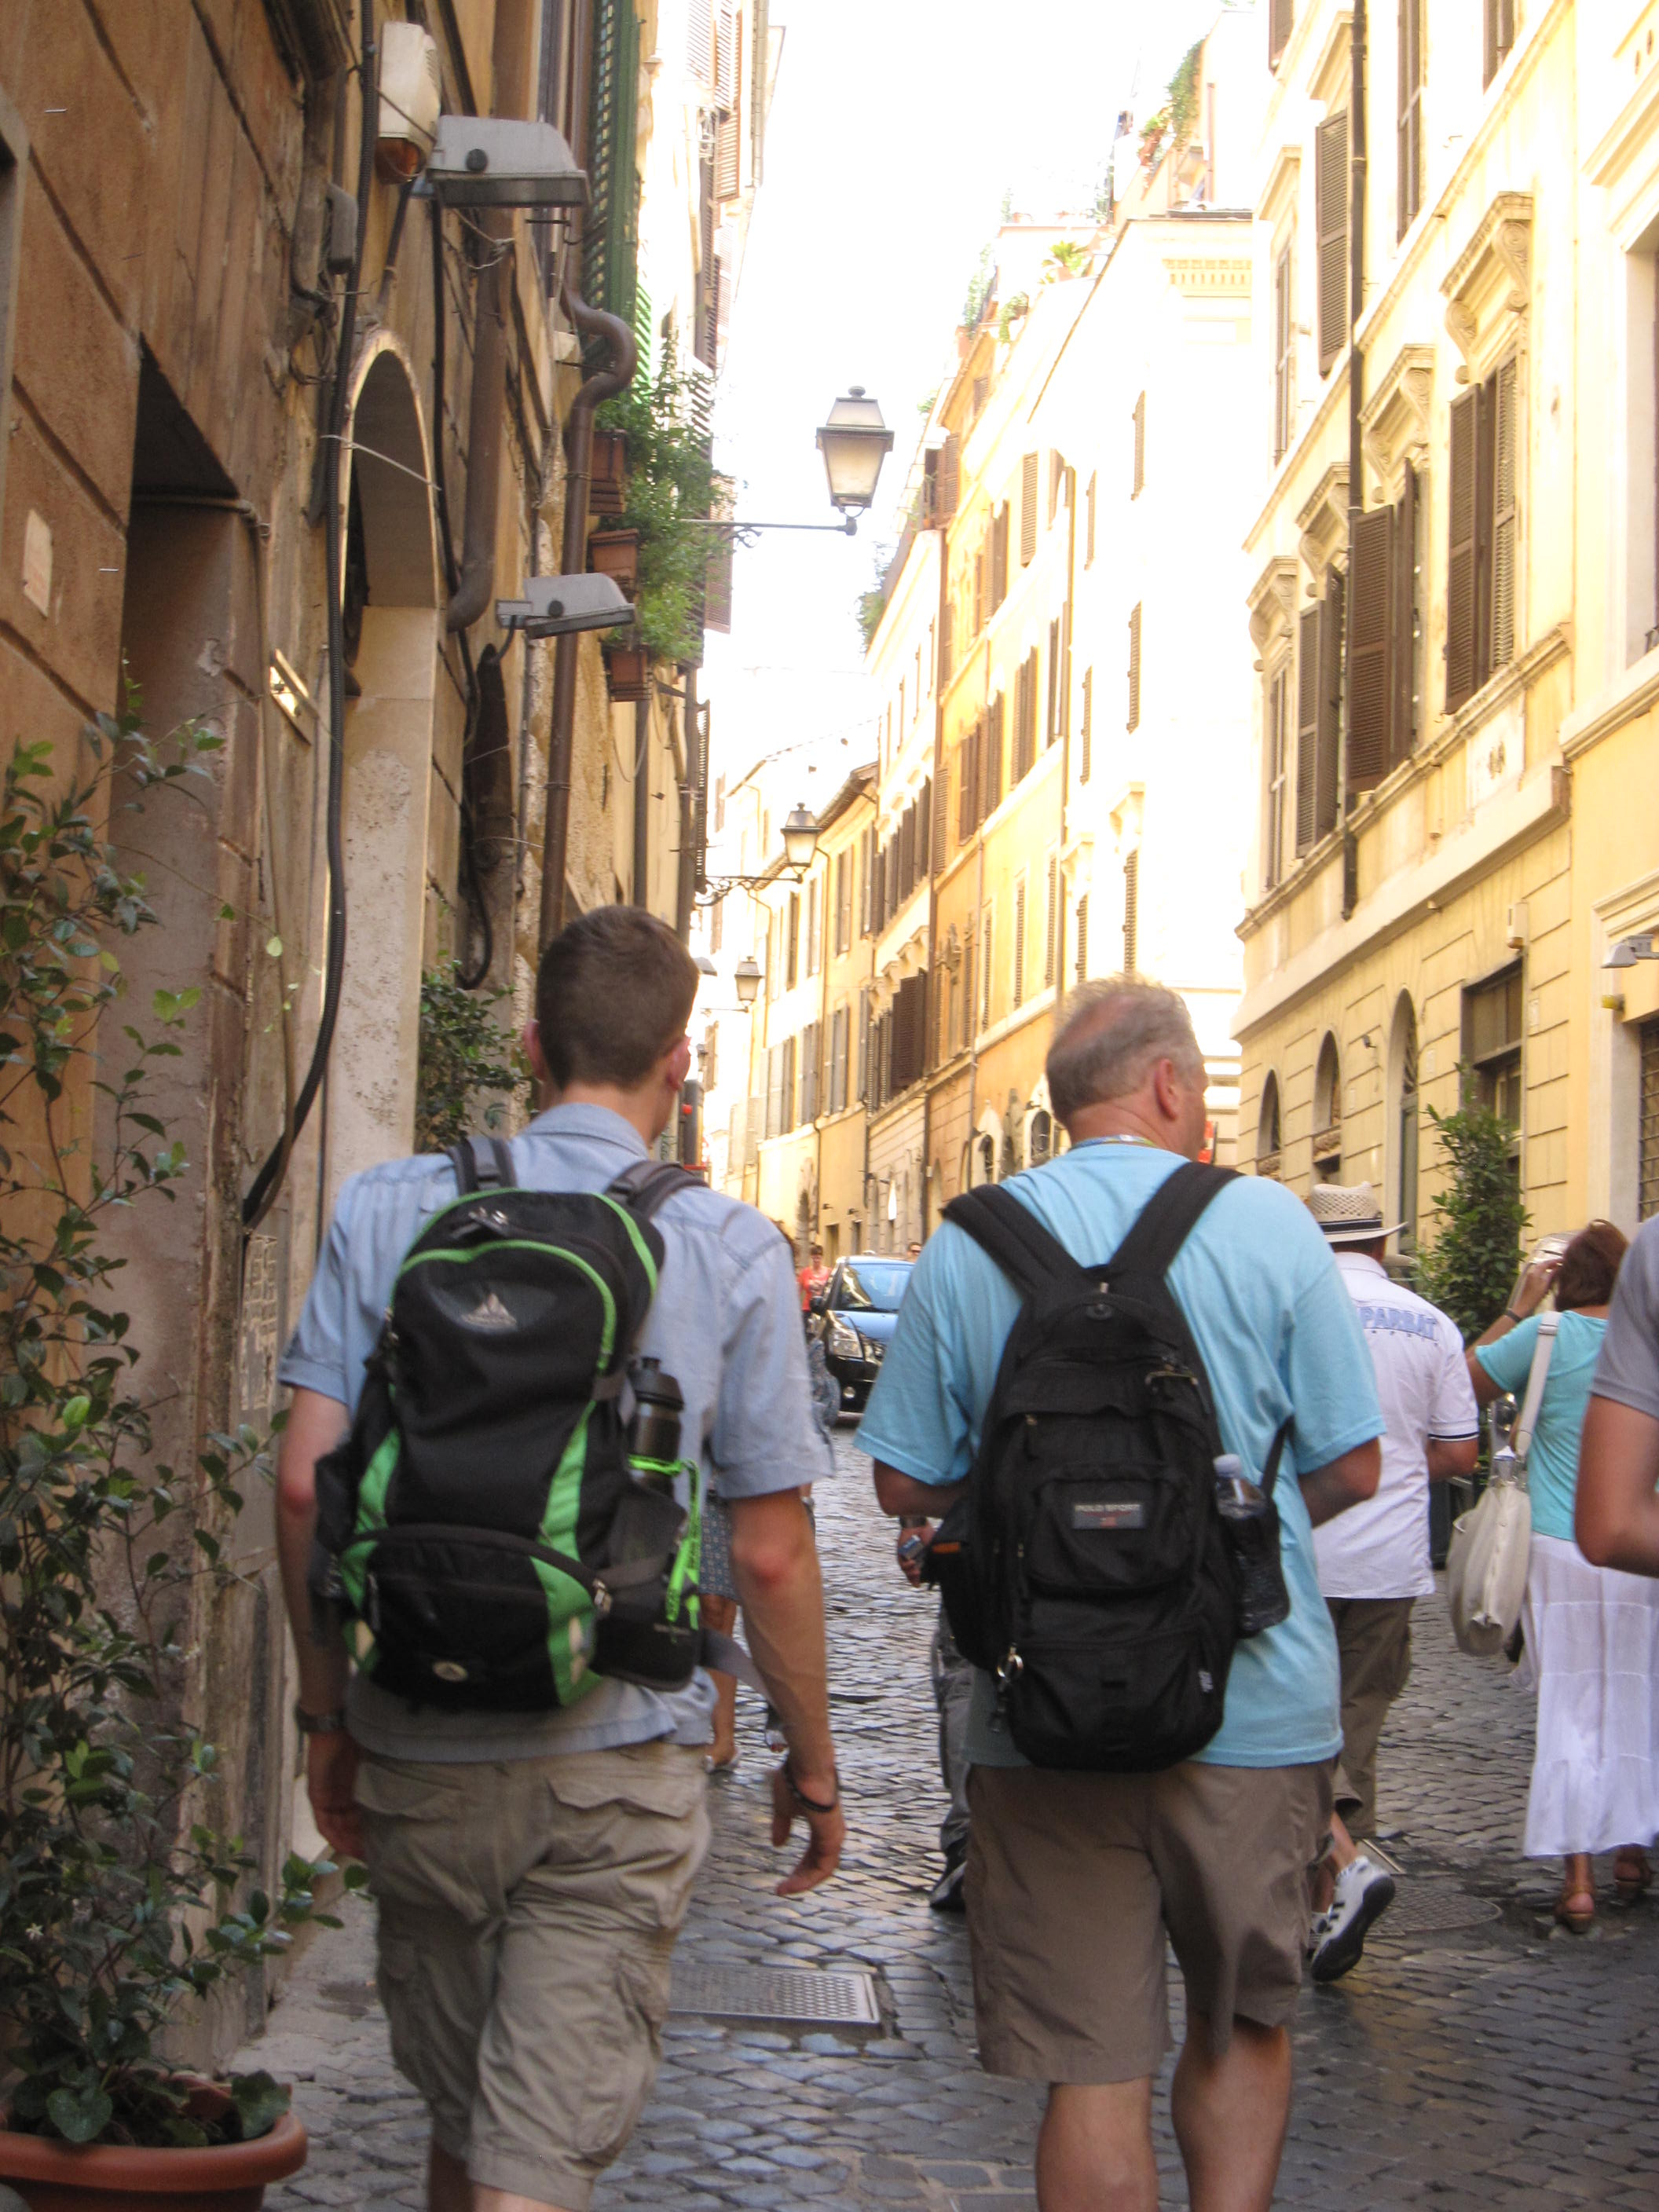 Onto the streets  Rome